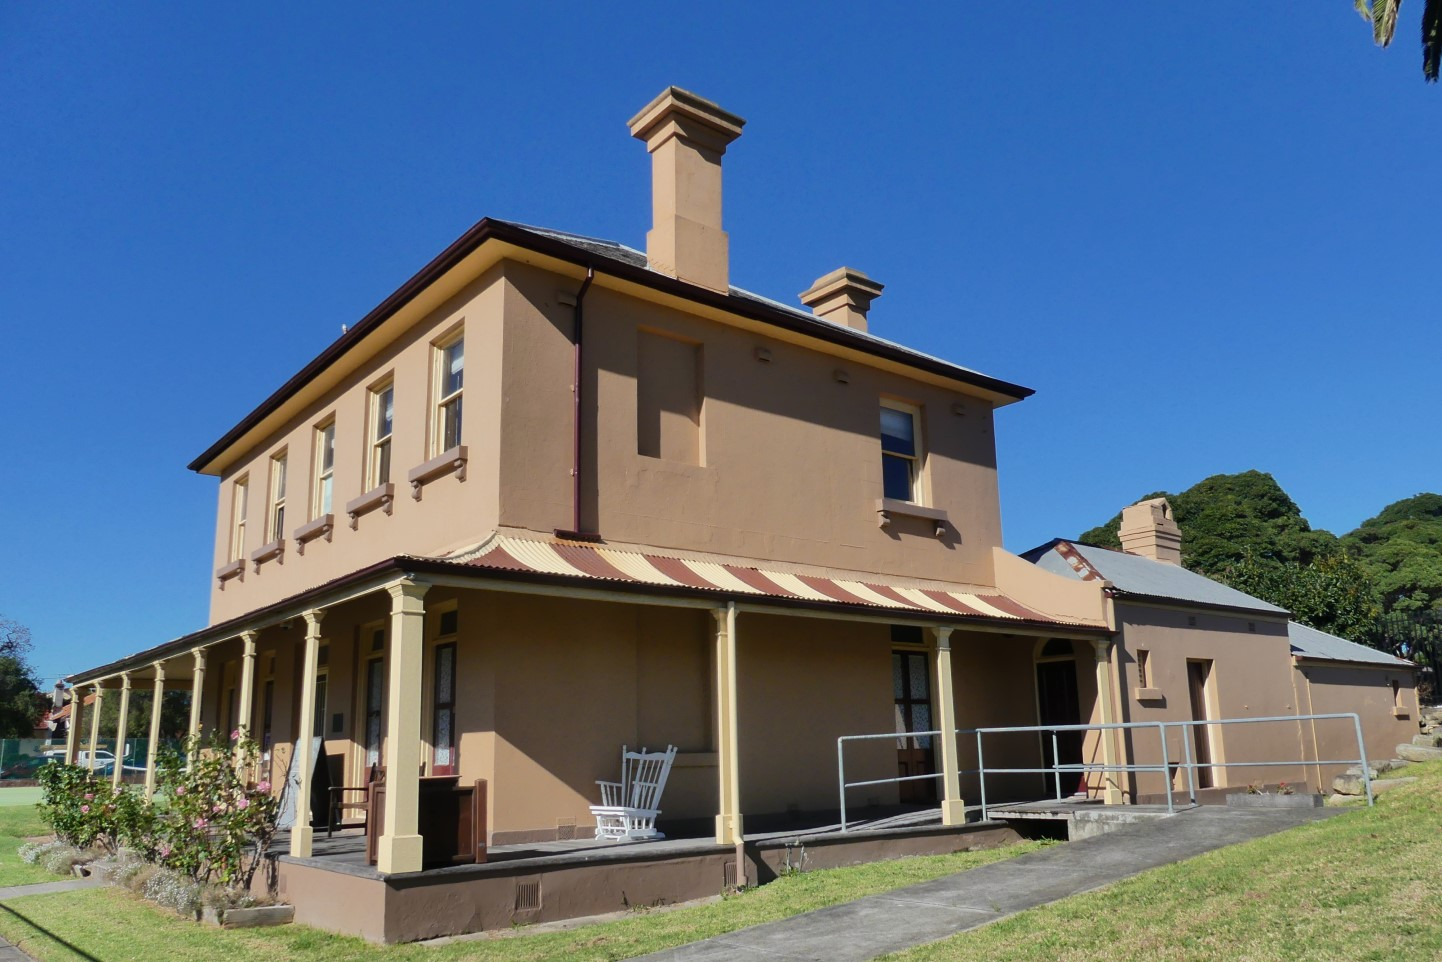 Thirning Villa. The location of the Ashfield & Districts Historical Society's Rooms in Pratten Park.